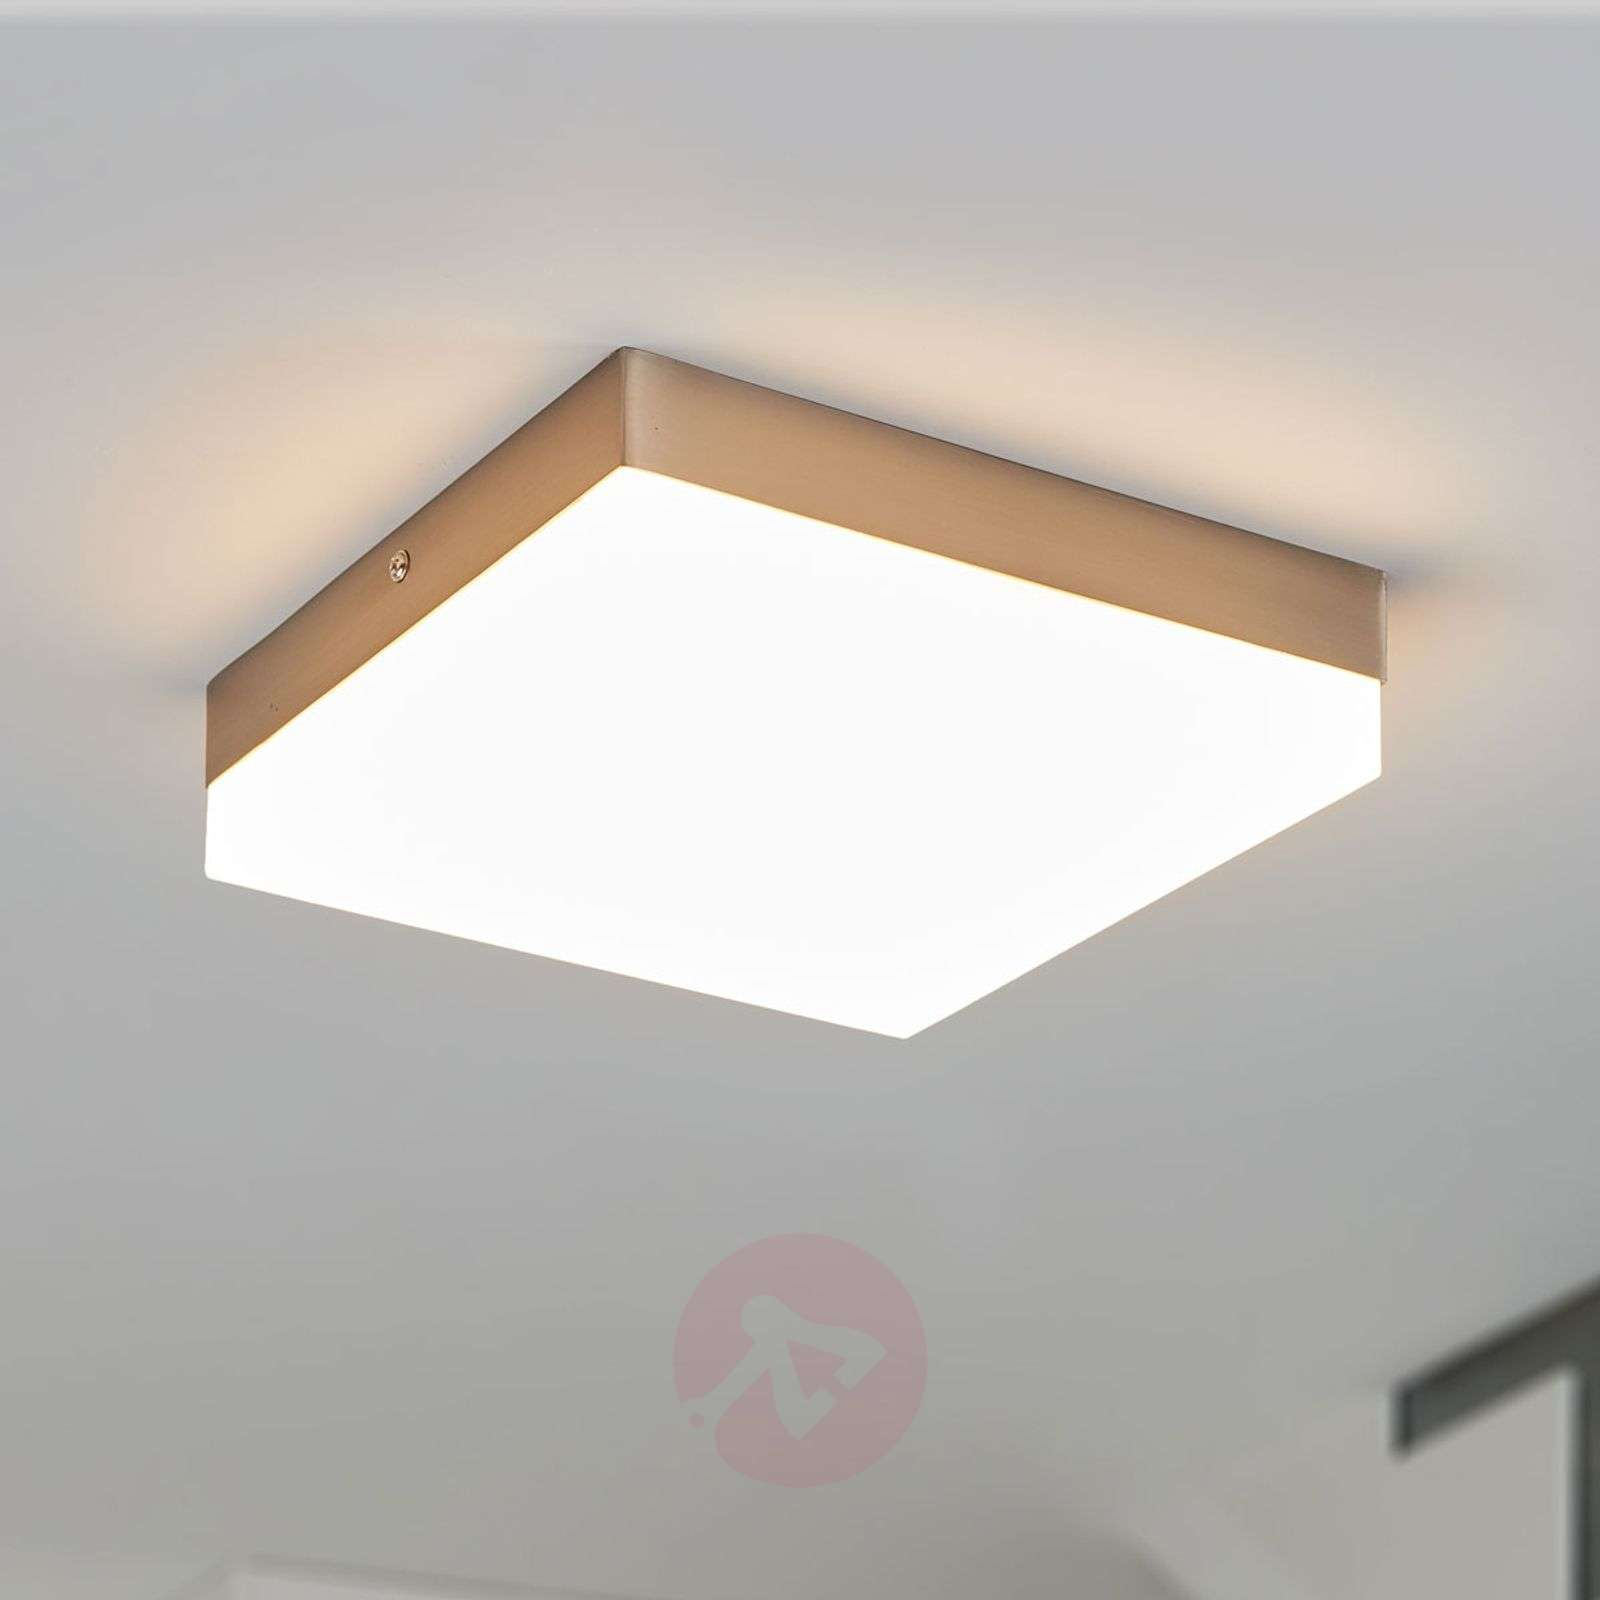 Plafoniera Led Eglo Prezzo : Acquista plafoniera led quadrata nieke lampade.it